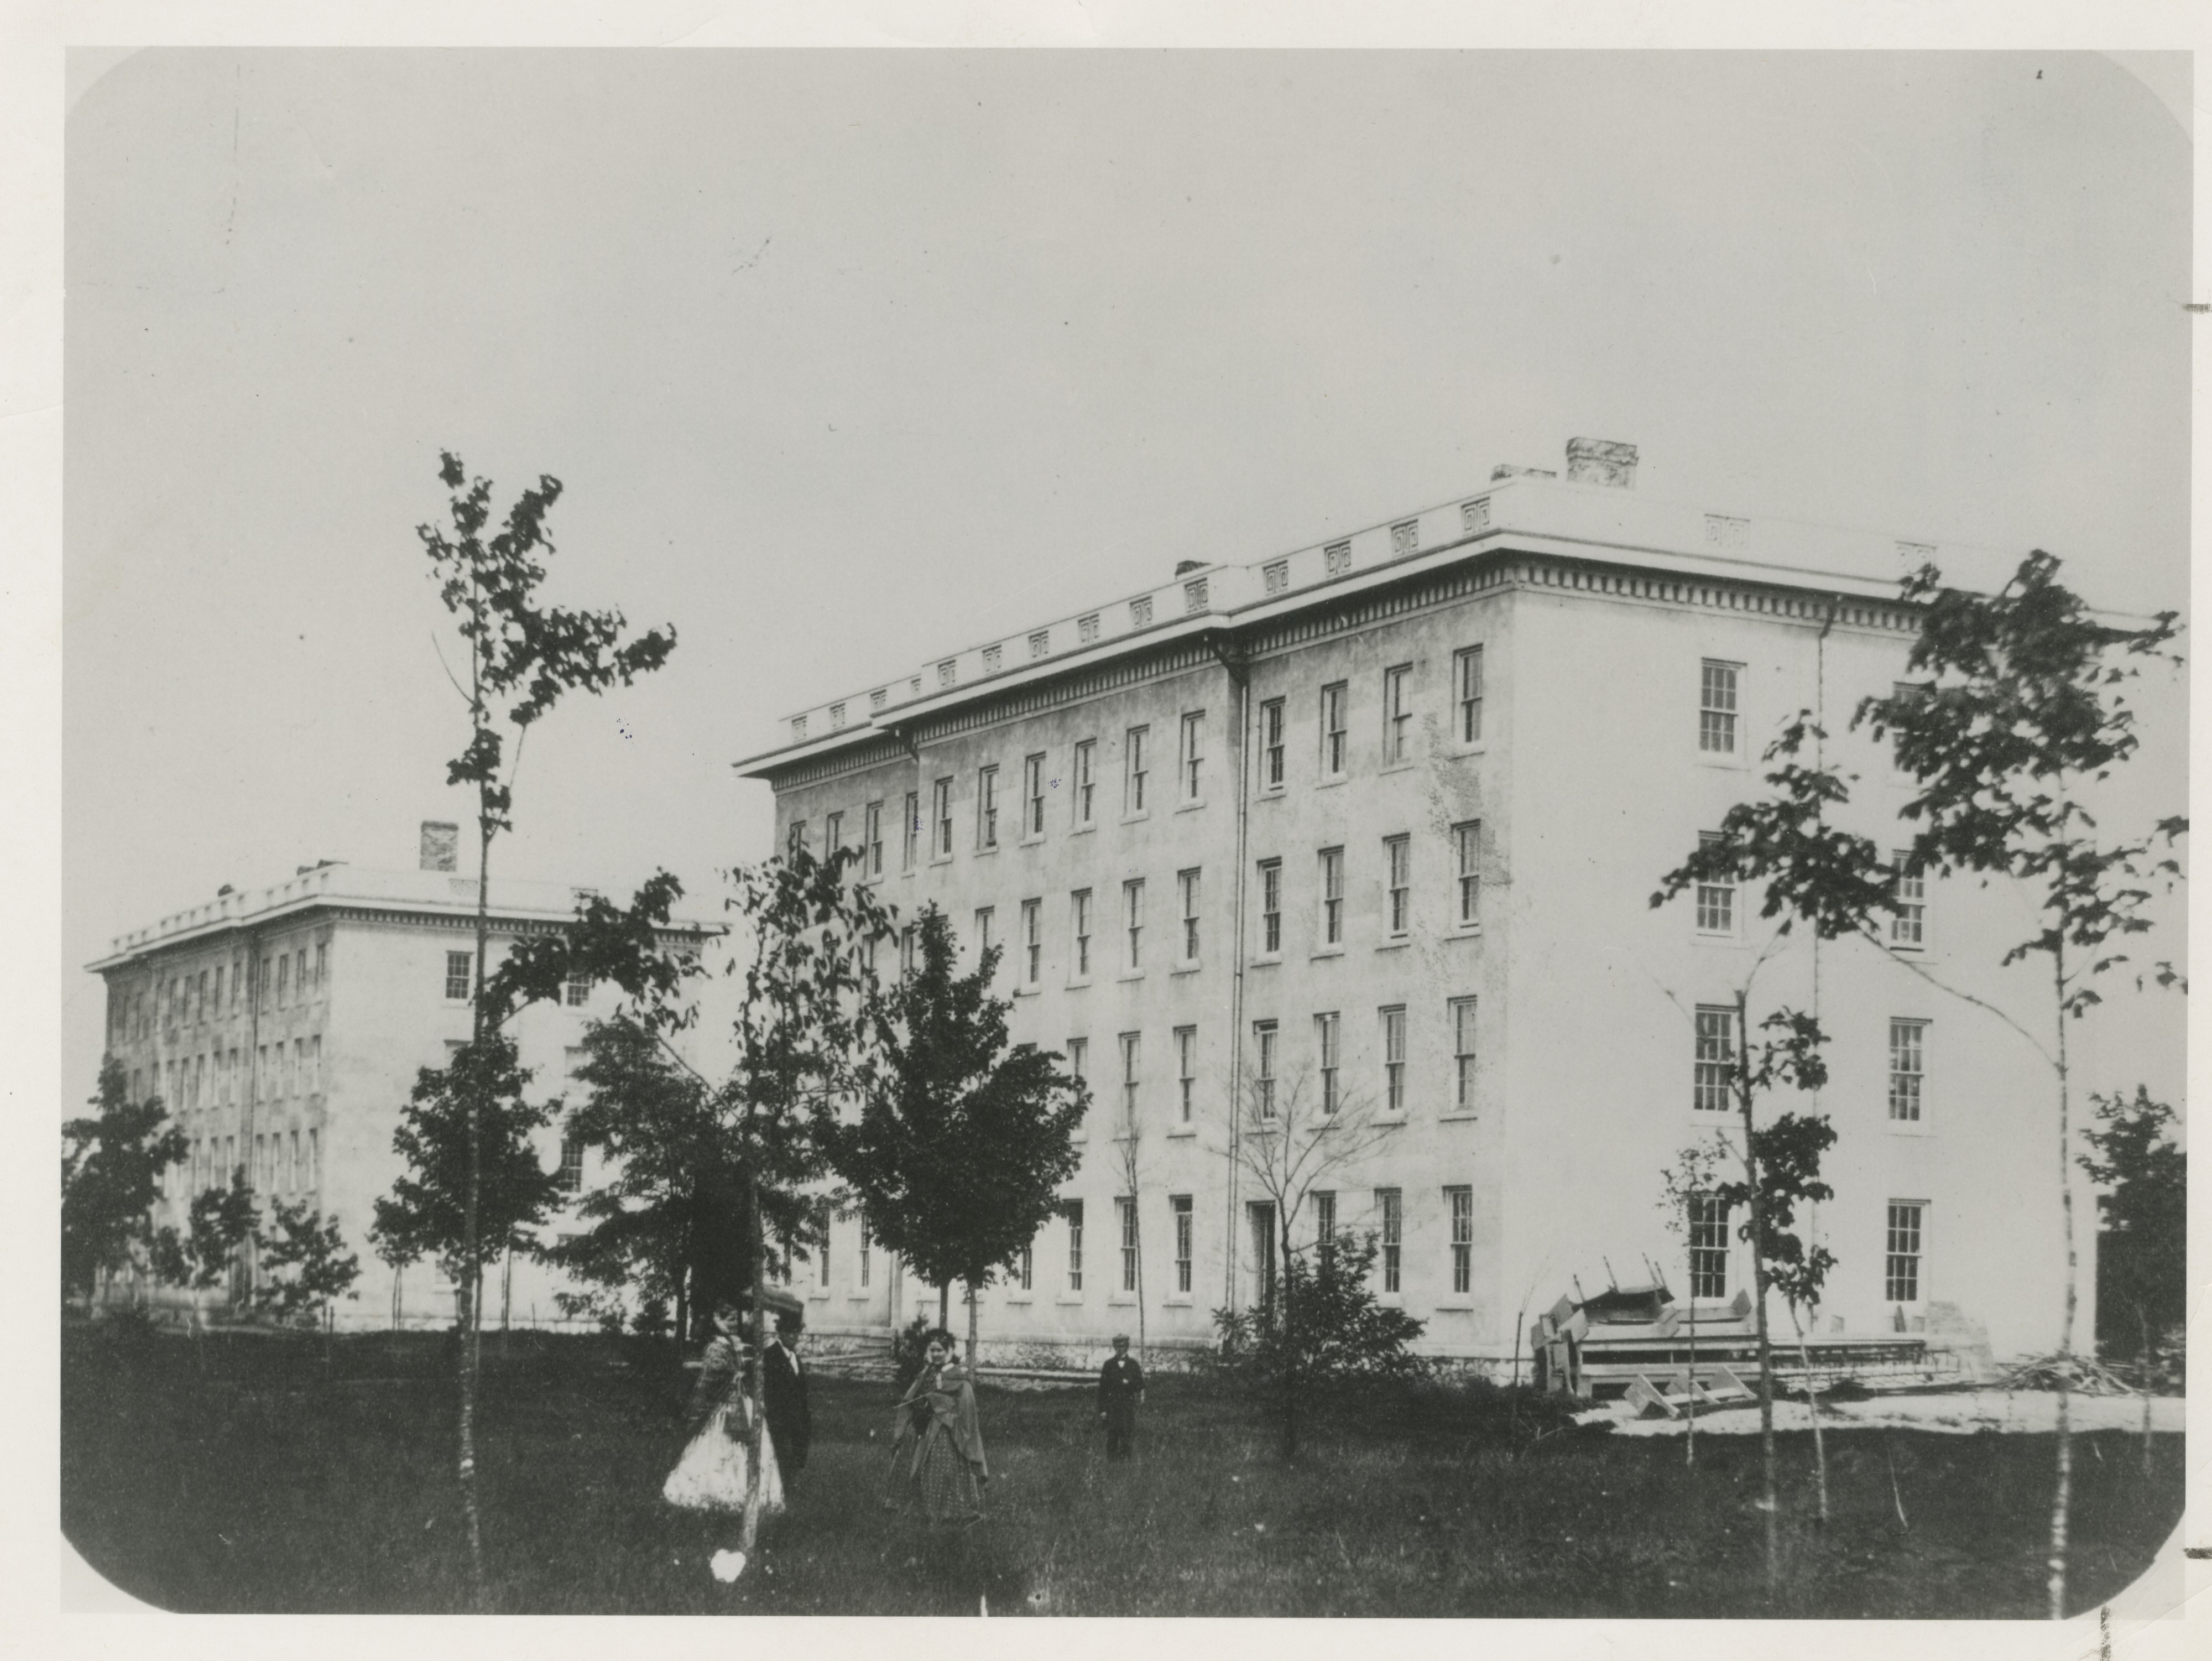 University Building, Later Mason Hall, circa 1850 image